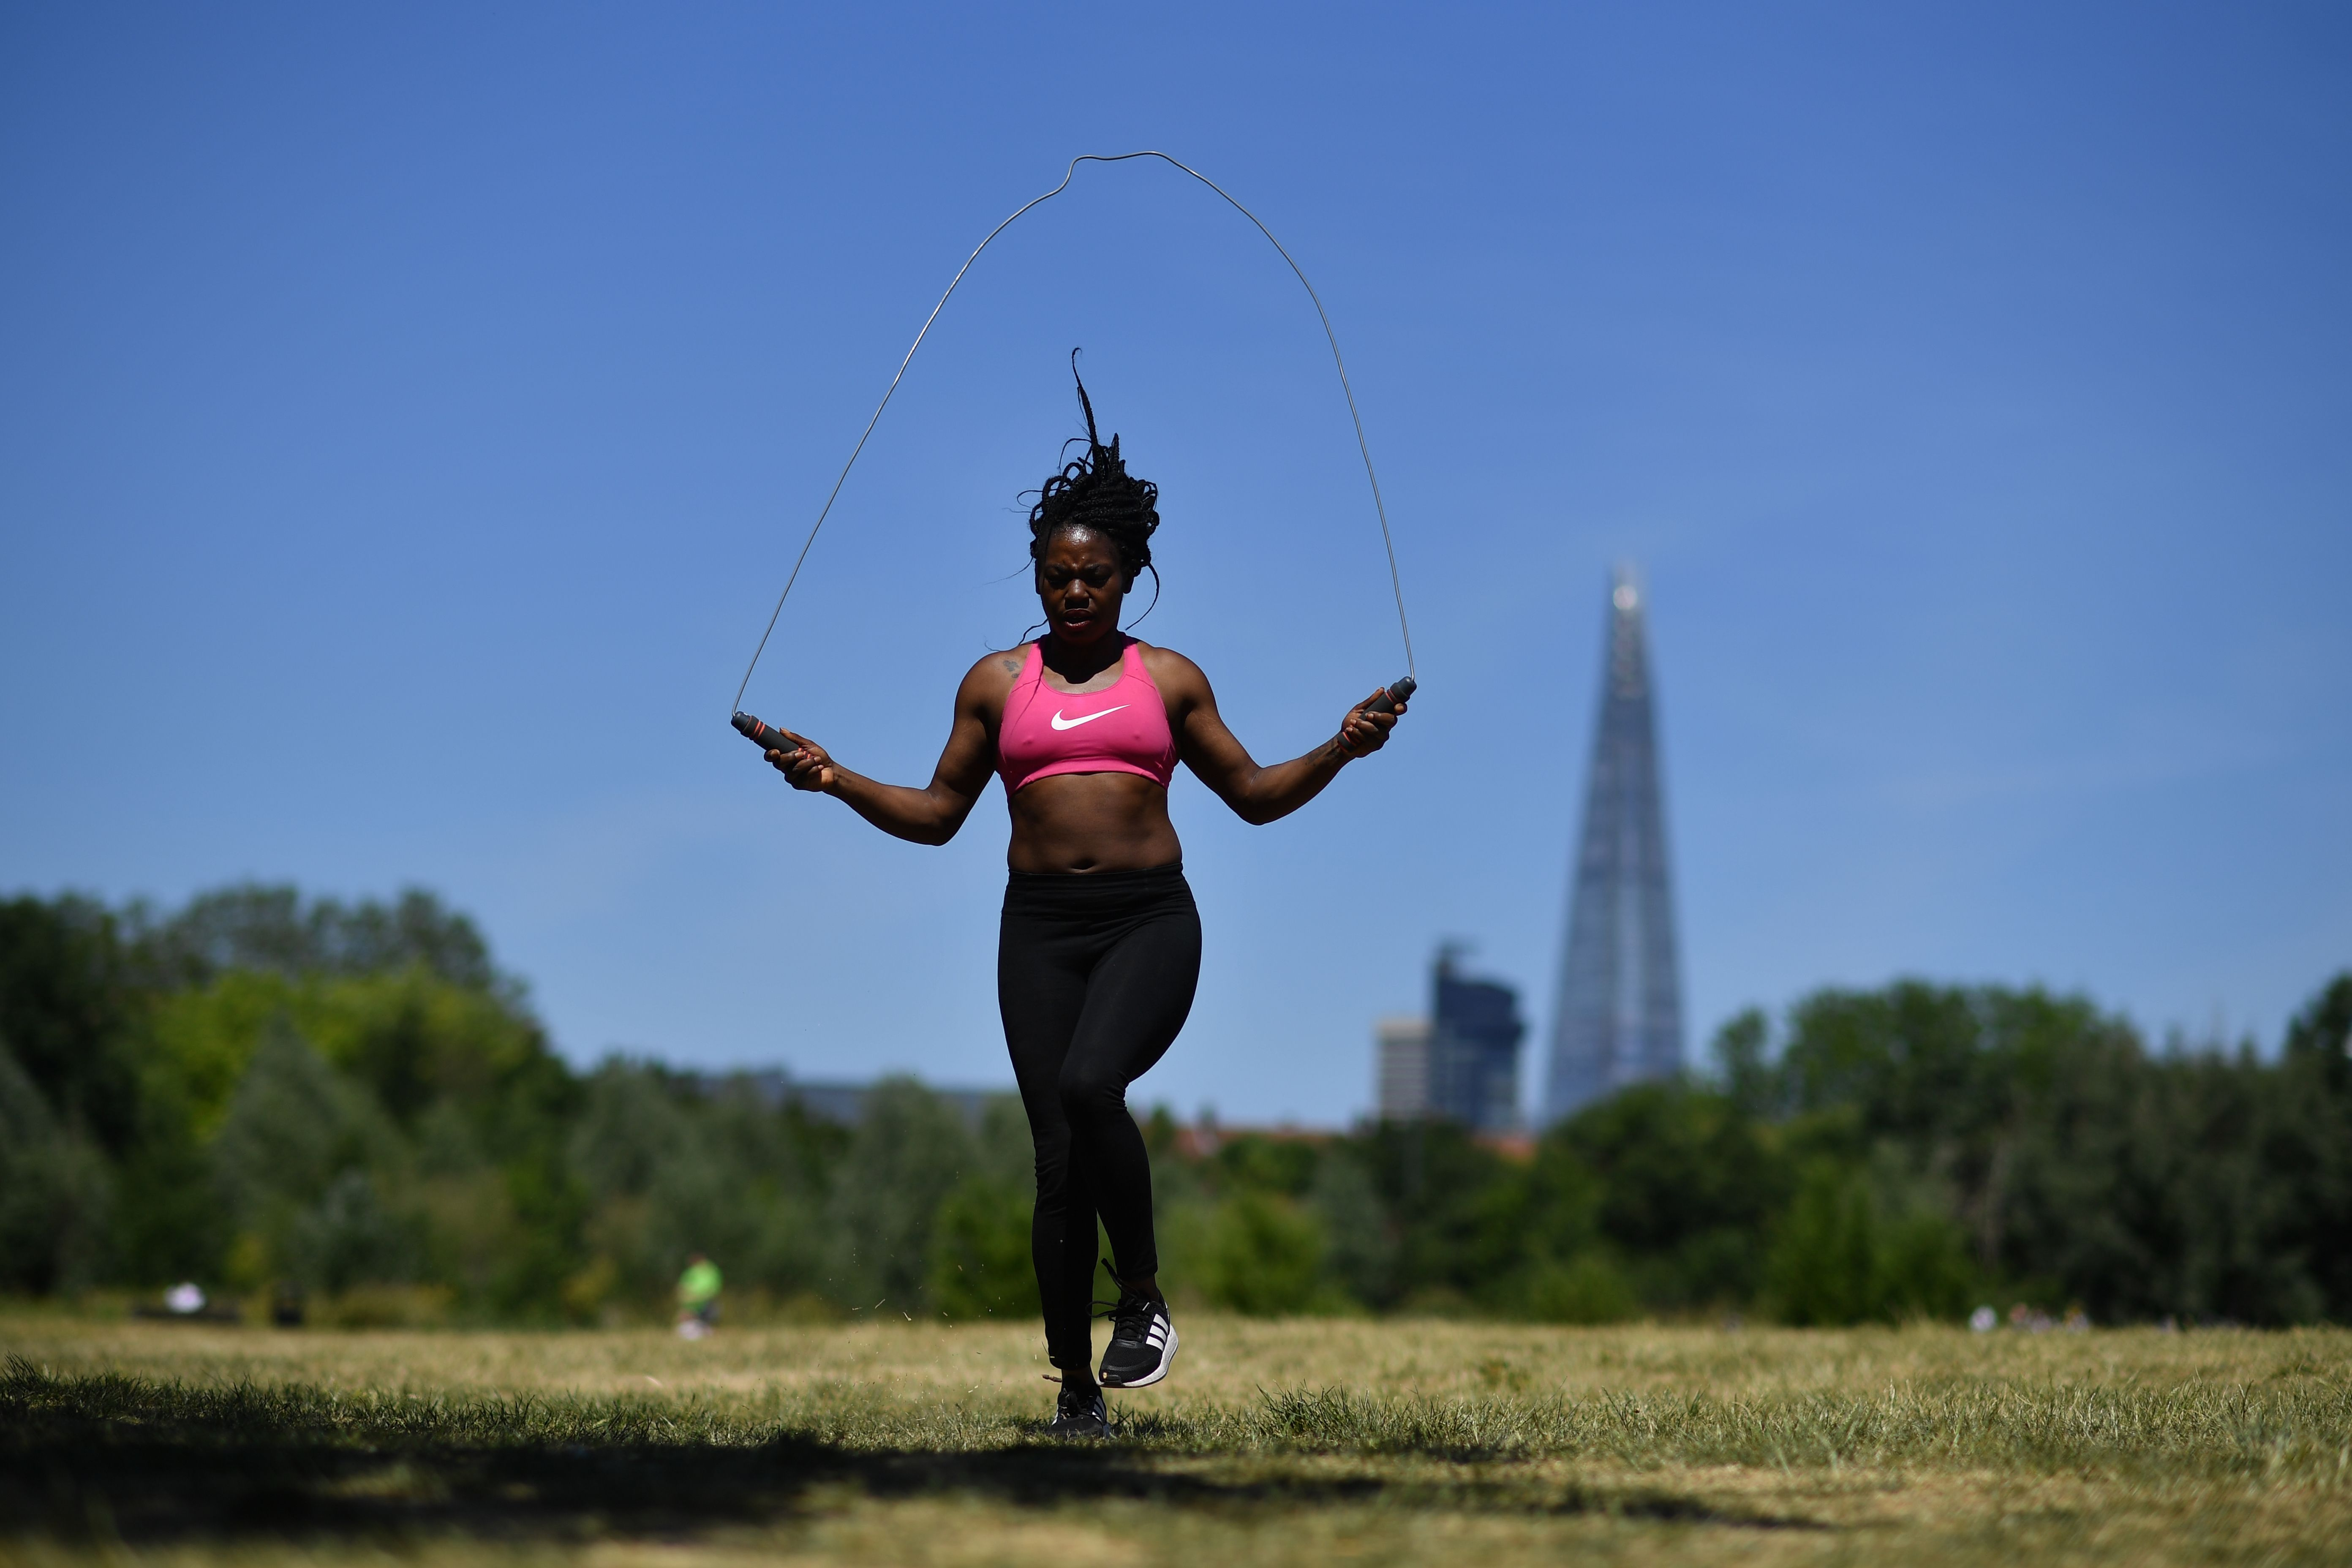 People exercise in Burgess Park in south London on May 29, 2020. (Photo by Ben STANSALL / AFP) (Photo by BEN STANSALL/AFP via Getty Images)